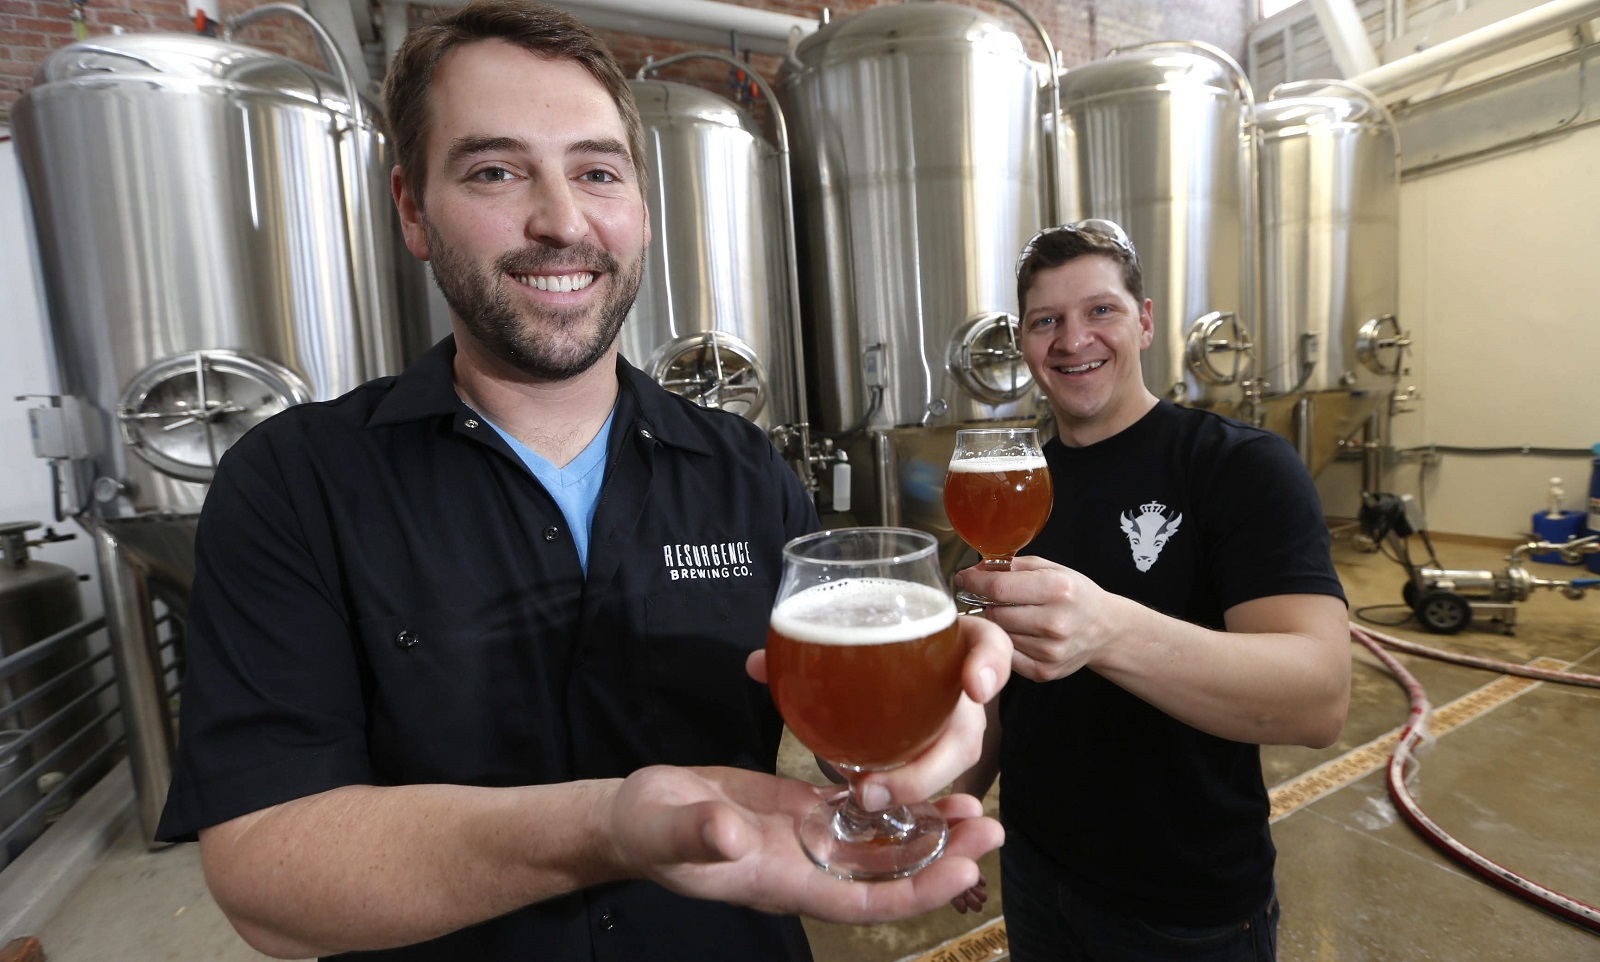 Resurgence owner Jeff Ware, left, and Dave Collins, master brewer, right. (Robert Kirkham/Buffalo News file photo)